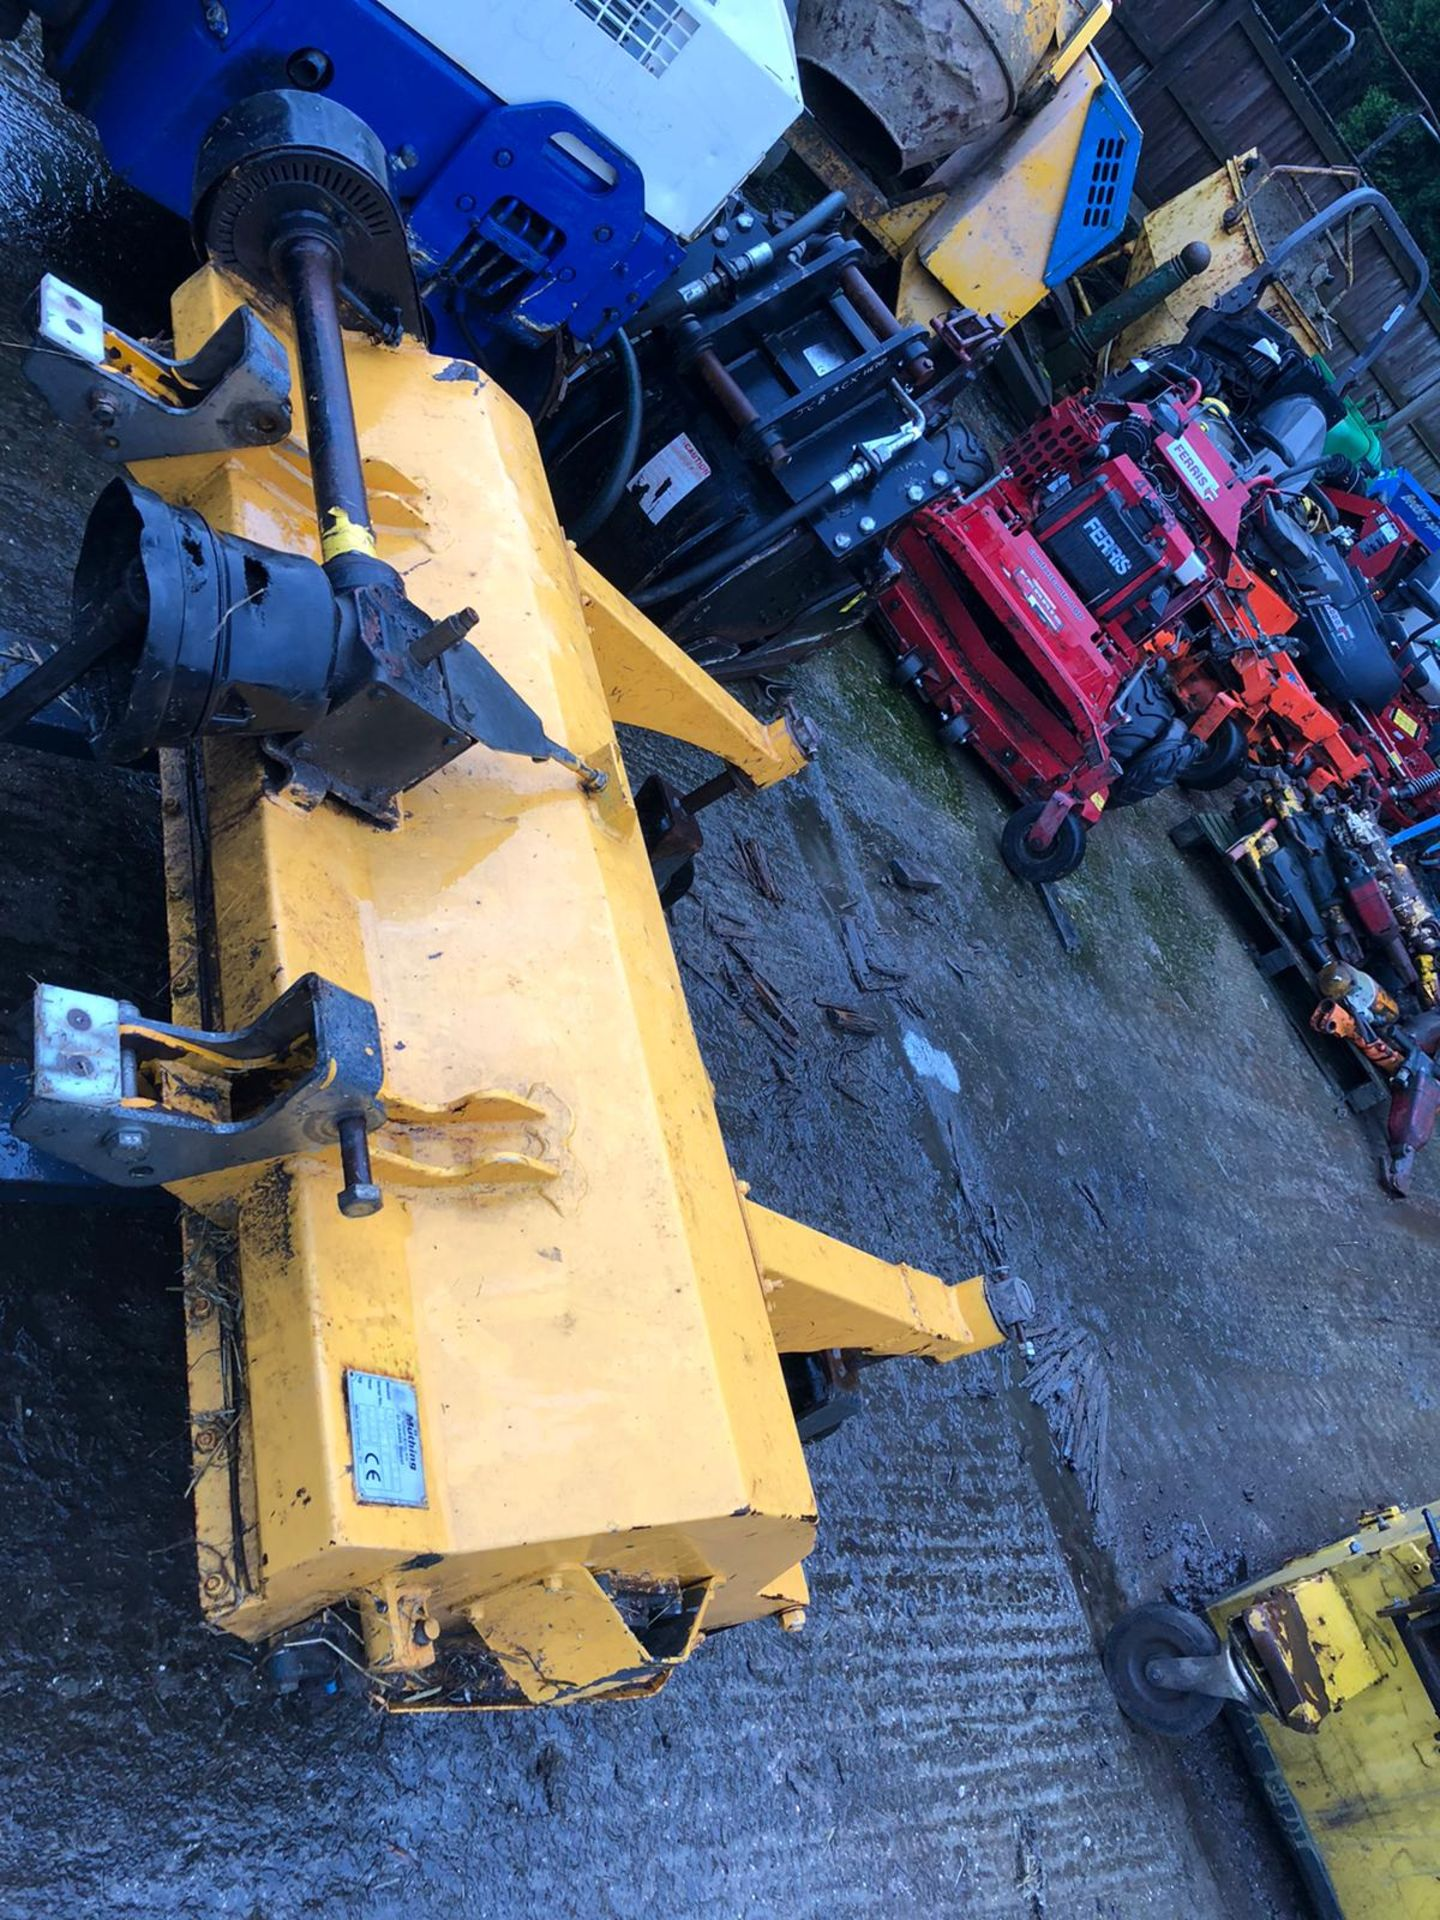 Lot 91 - MUTHING 140 FLAIL DECK, CAME OFF A 2015 JOHN DEERE 1570 WILL FIT JOHN DEERE 1545, 1445 KUBOTA & MORE